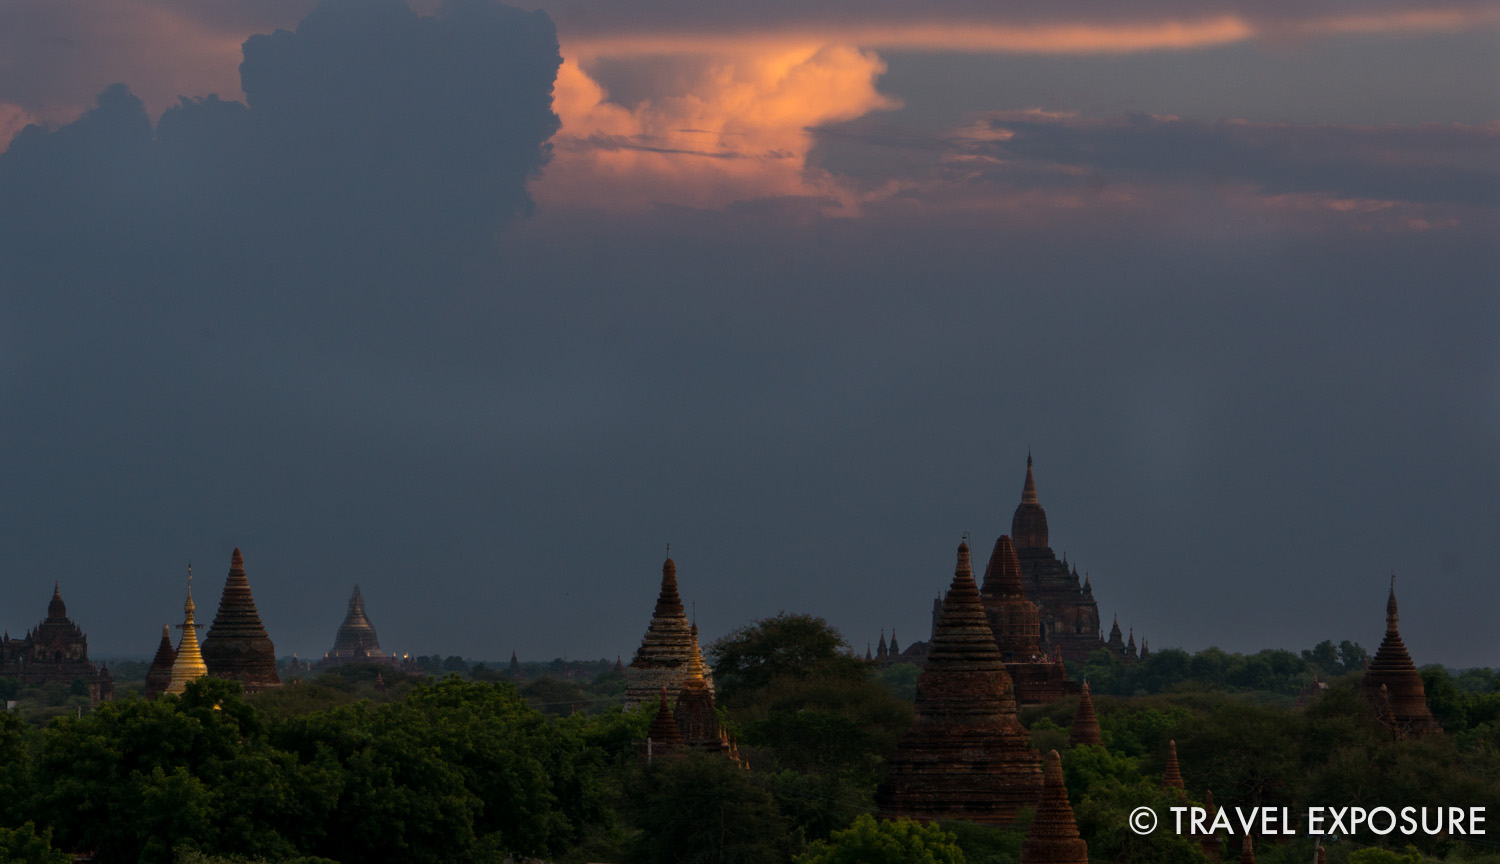 View from Shwe Leik Too Temple (Viewpoint #1)